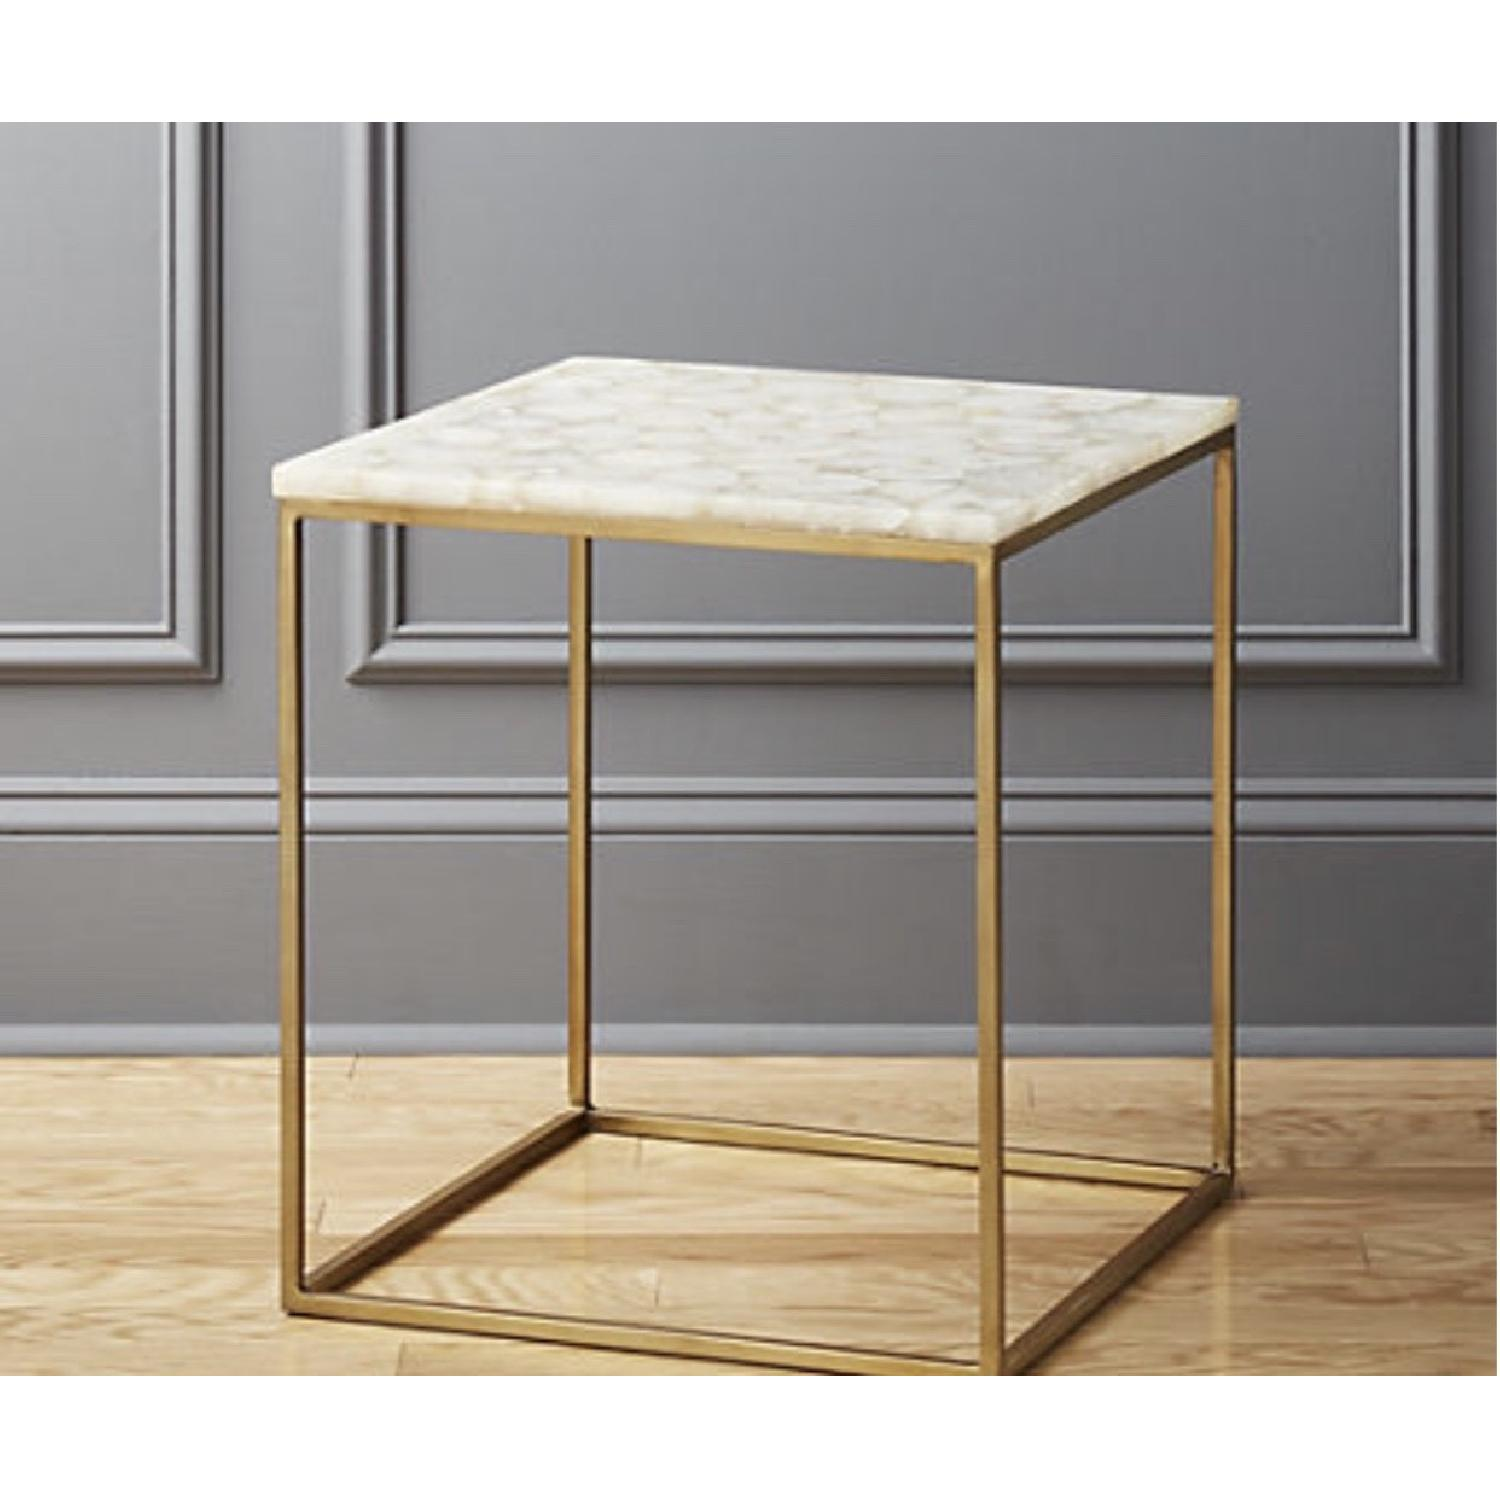 CB2 Iris White Agate Side Table-1